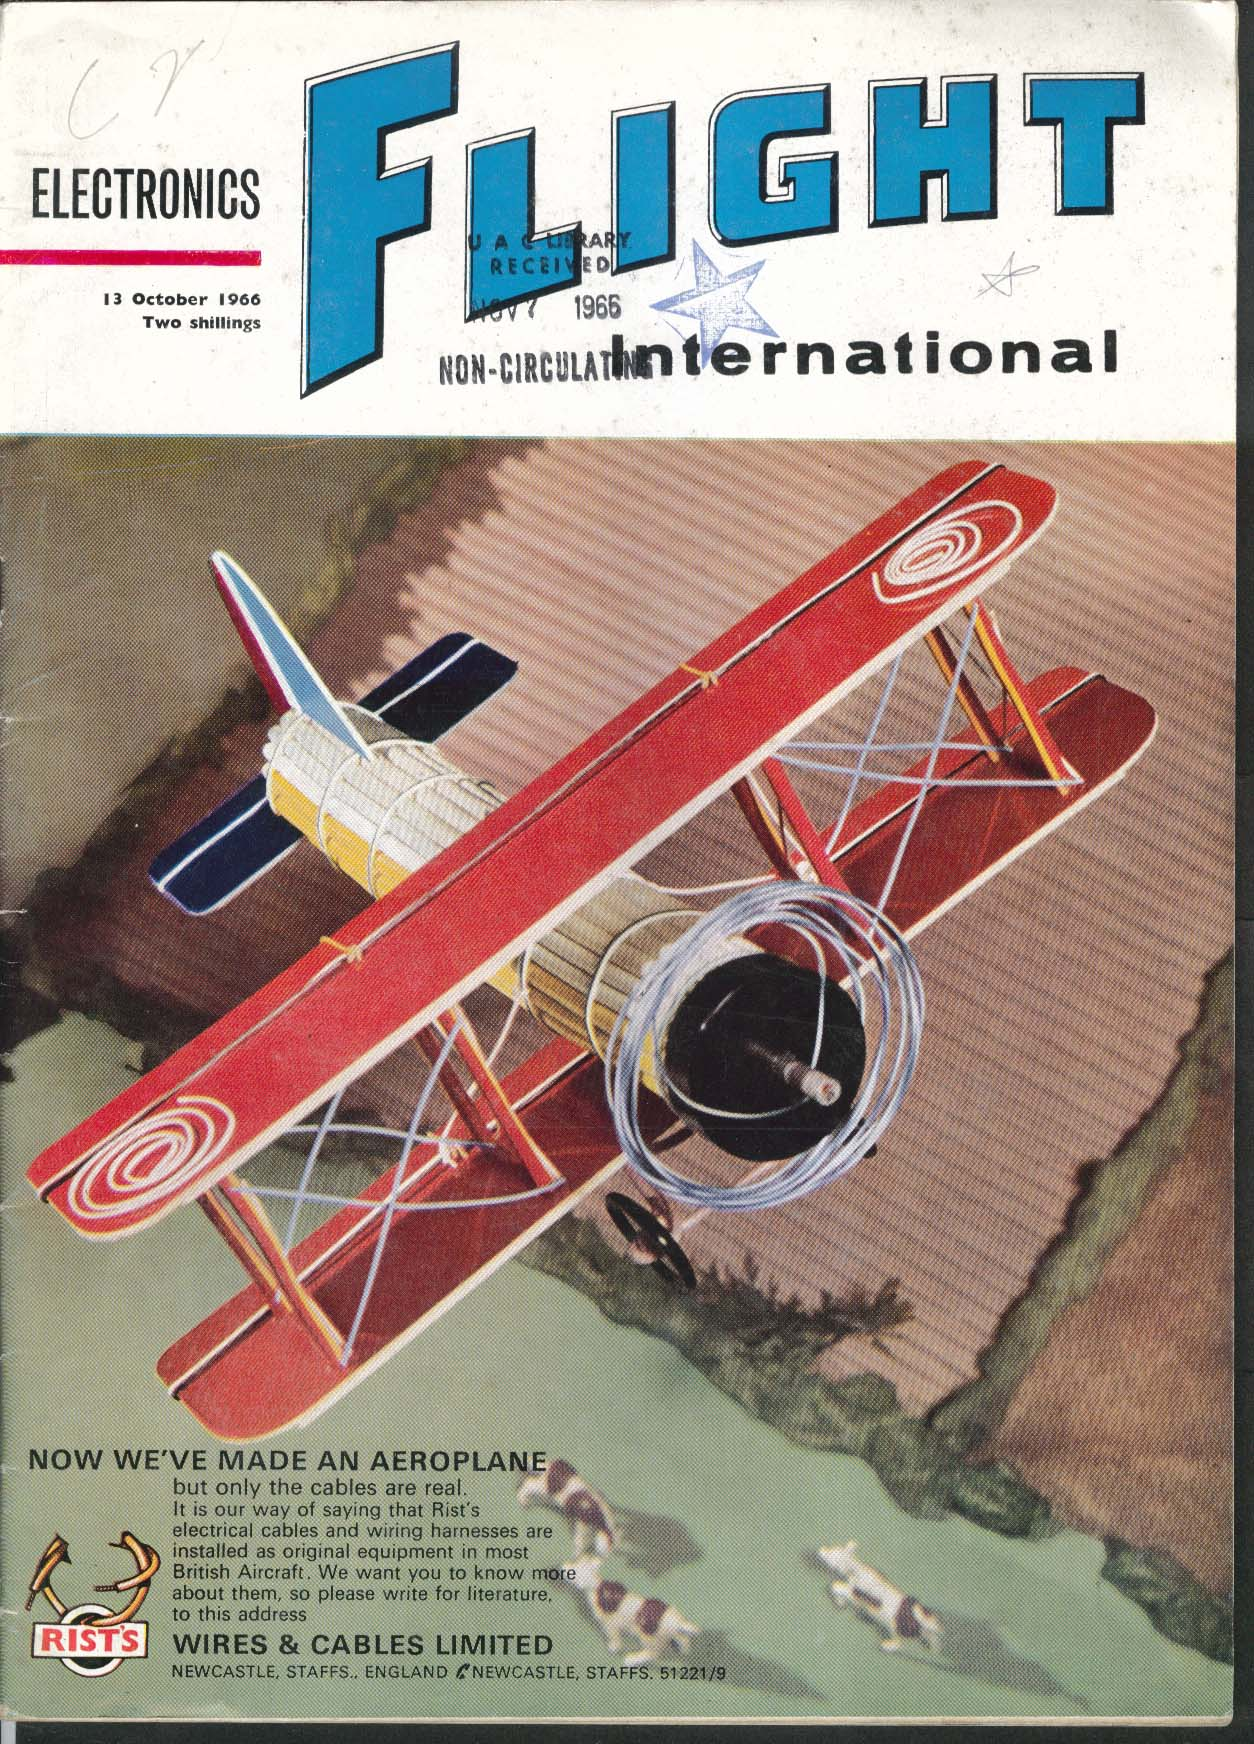 airplane wiring harness rules for routing aircraft wiring assembly Aviation Wire Harness magazines flight international electronics cdi bell jet ranger hughes 500 piper 10 13 1966 aviation wire harness routing specifications